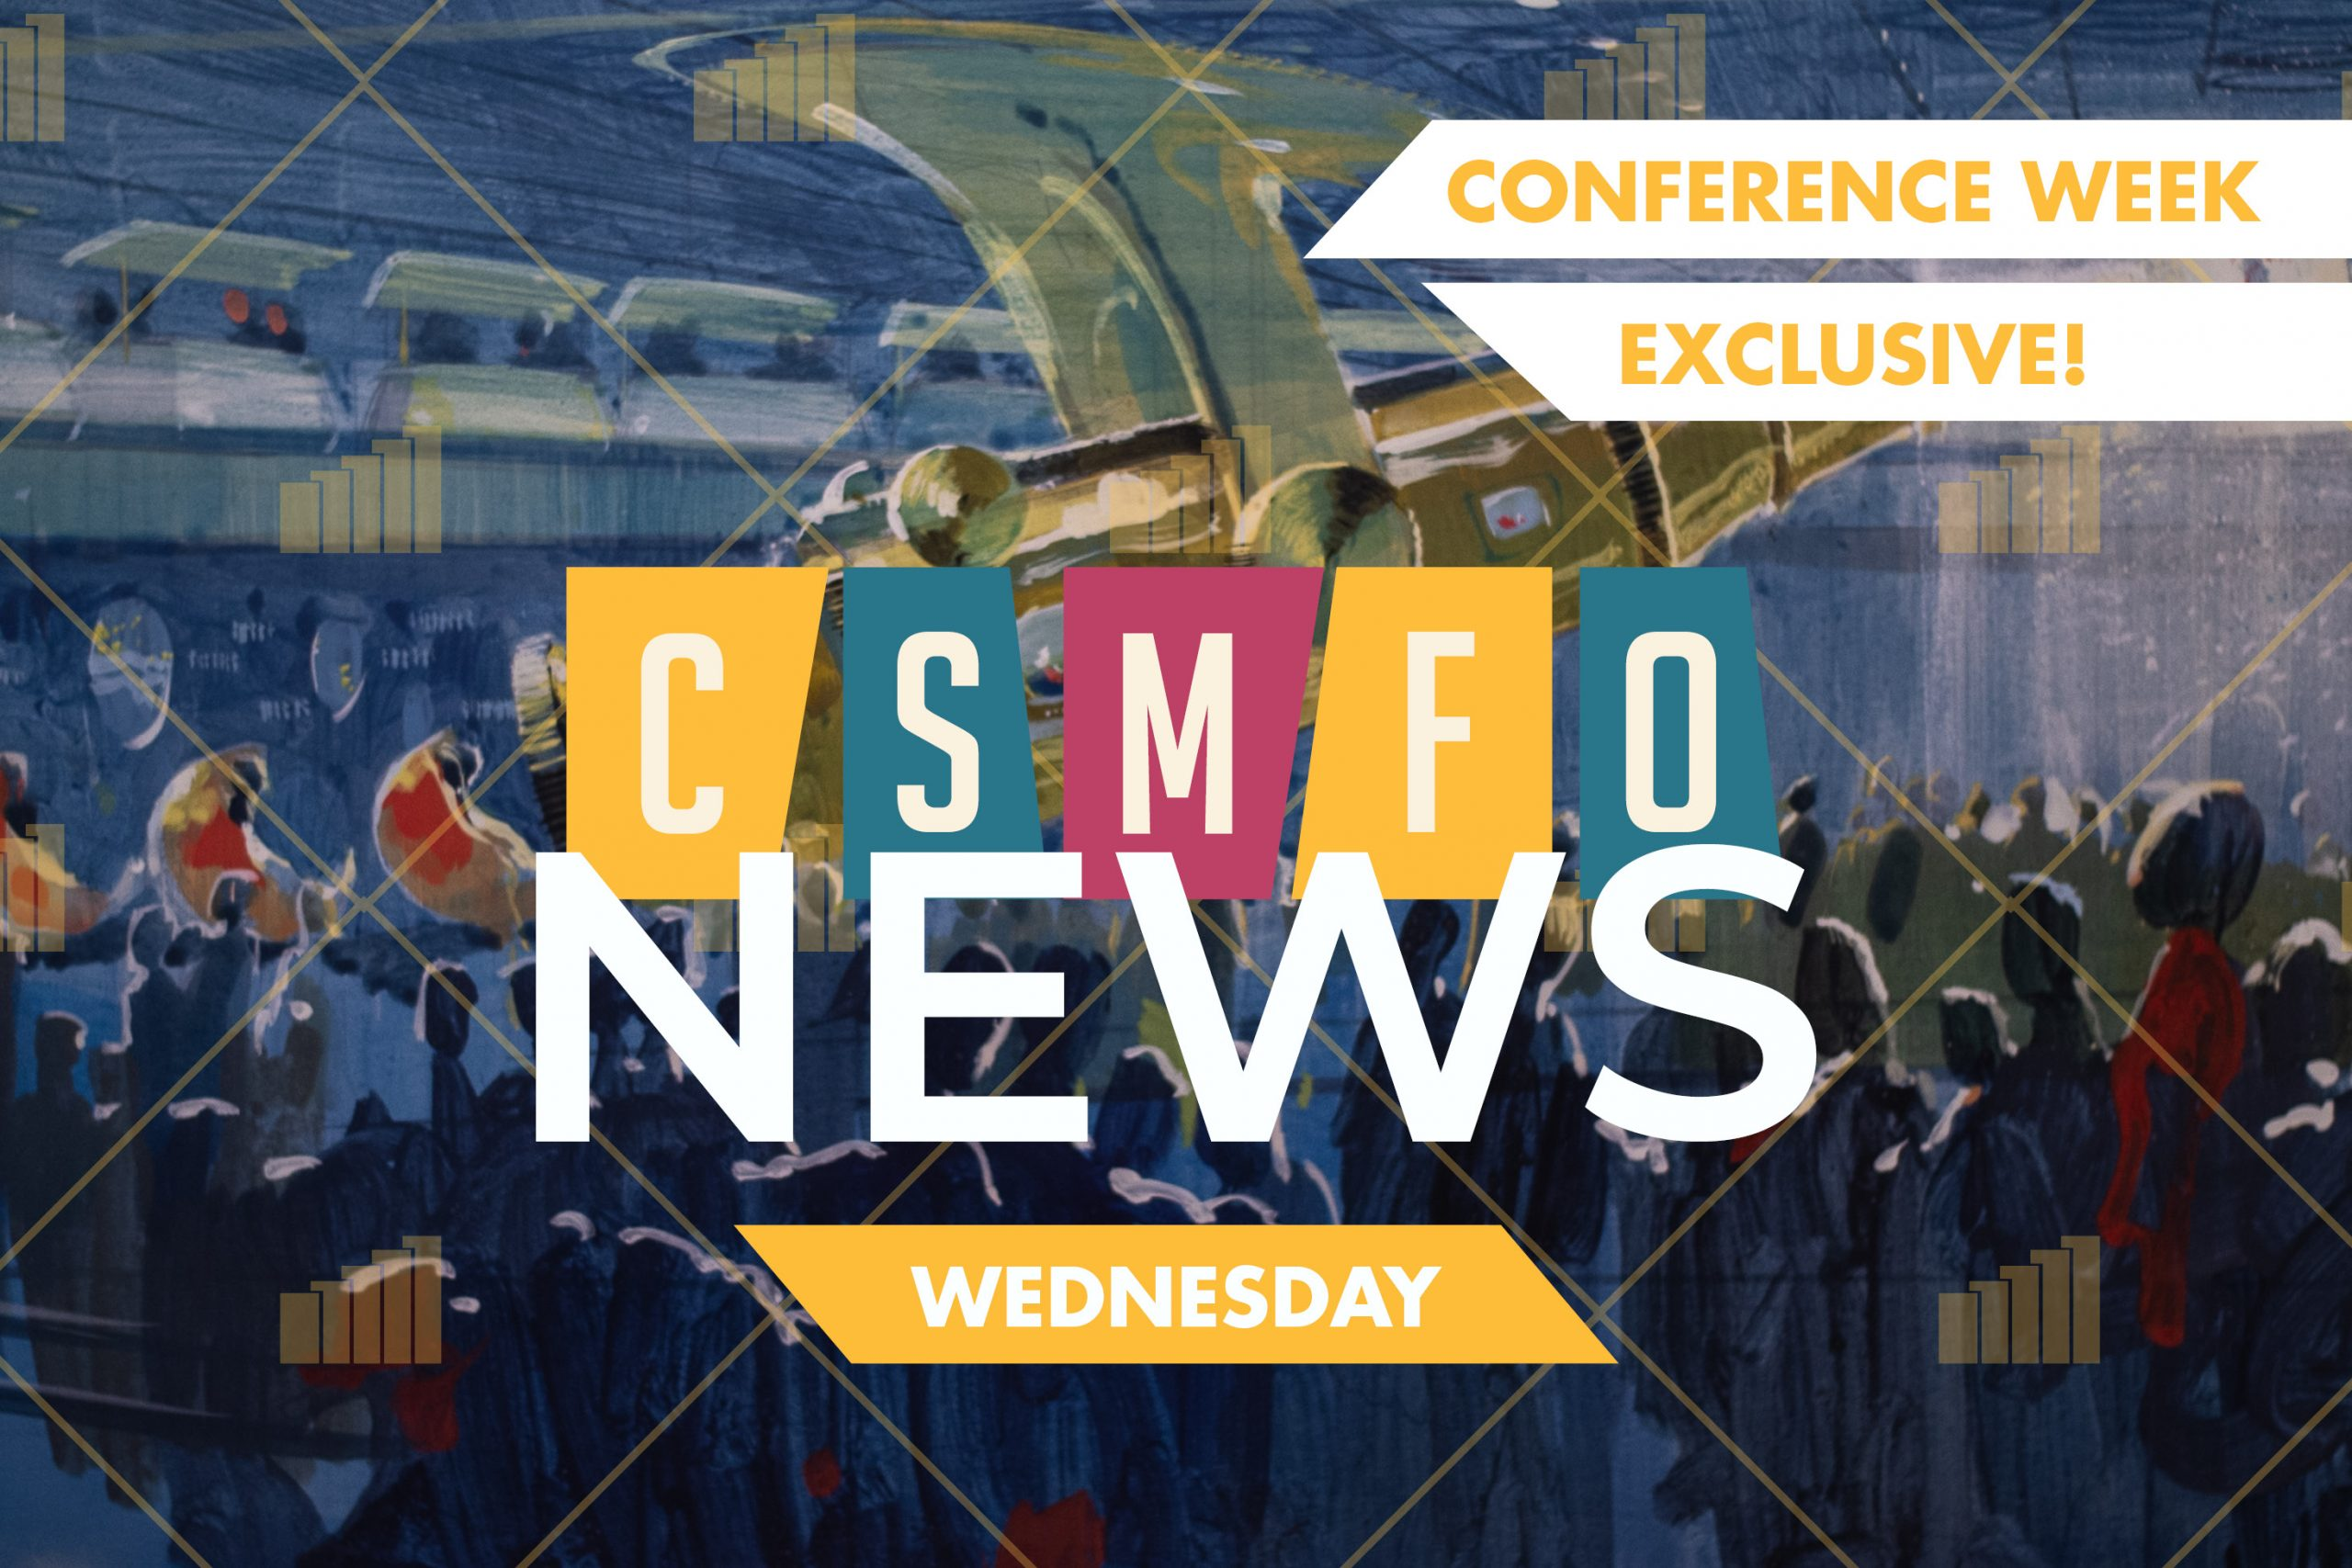 CSMFO News | Conference Week | Wednesday